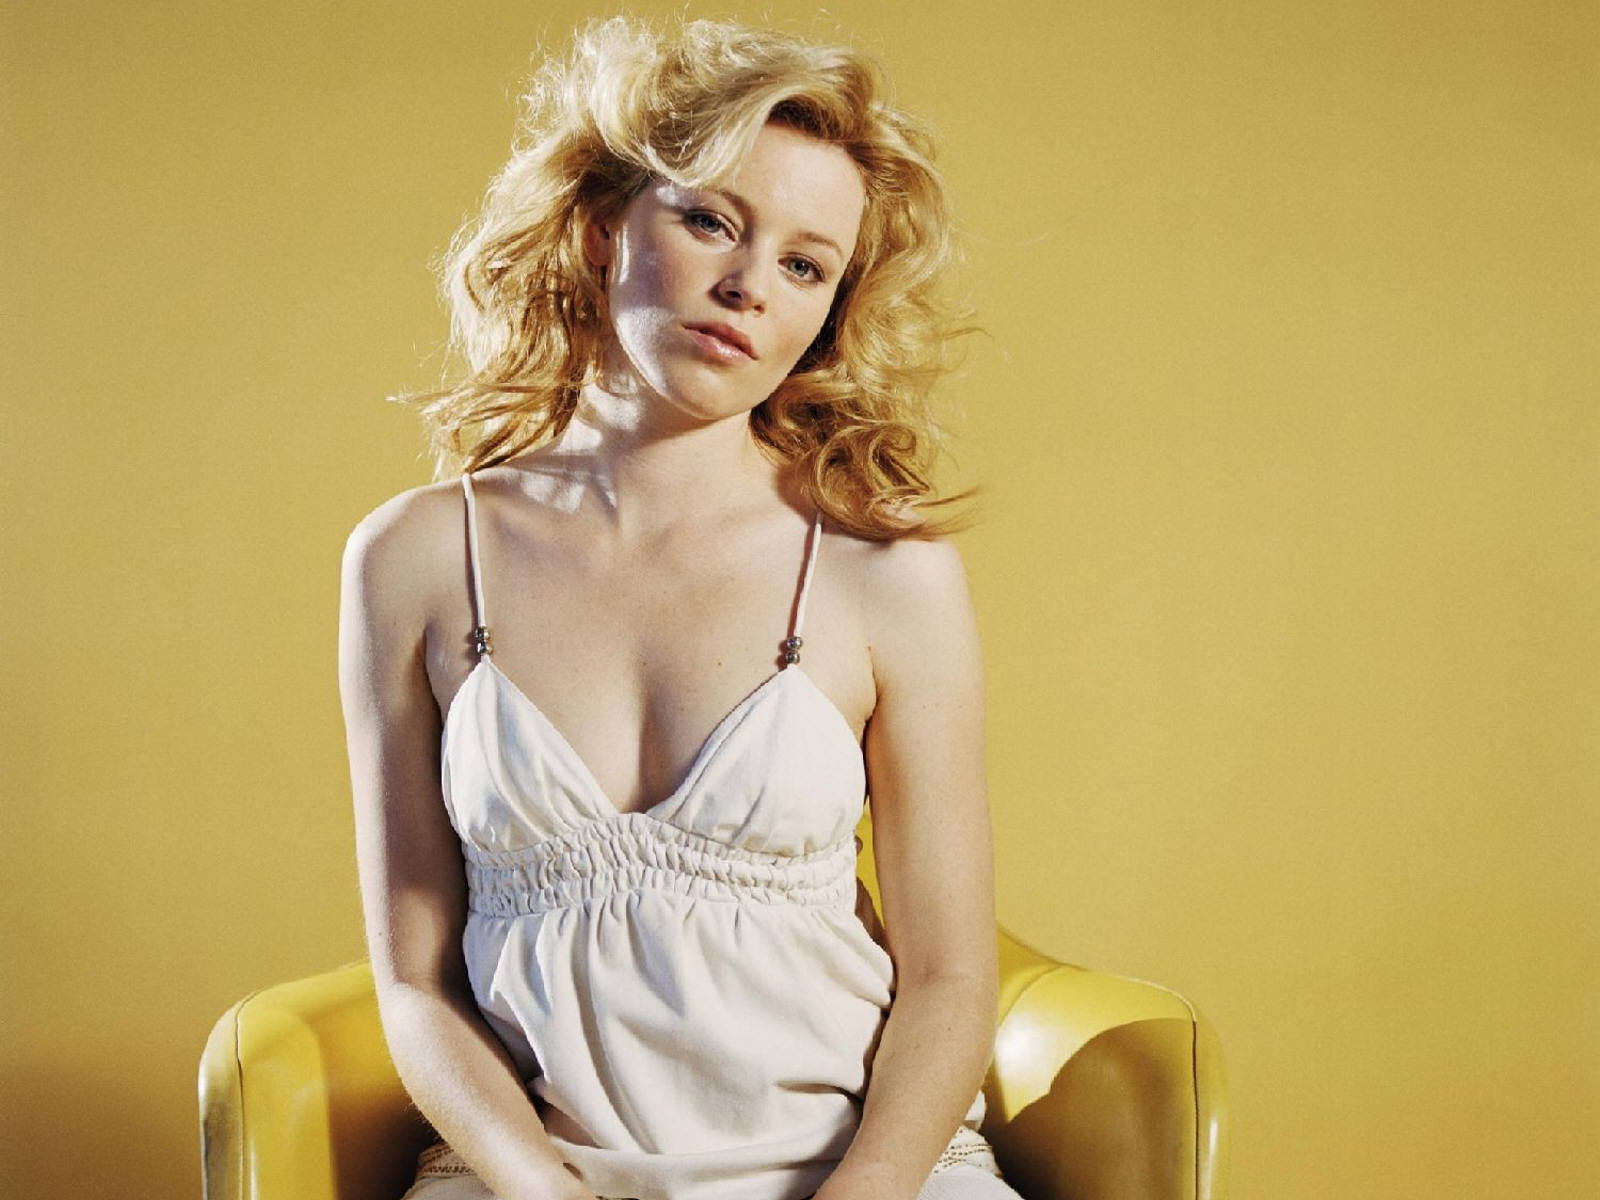 Hollywood actress wallpapers: Elizabeth Mitchell hd wallpapers